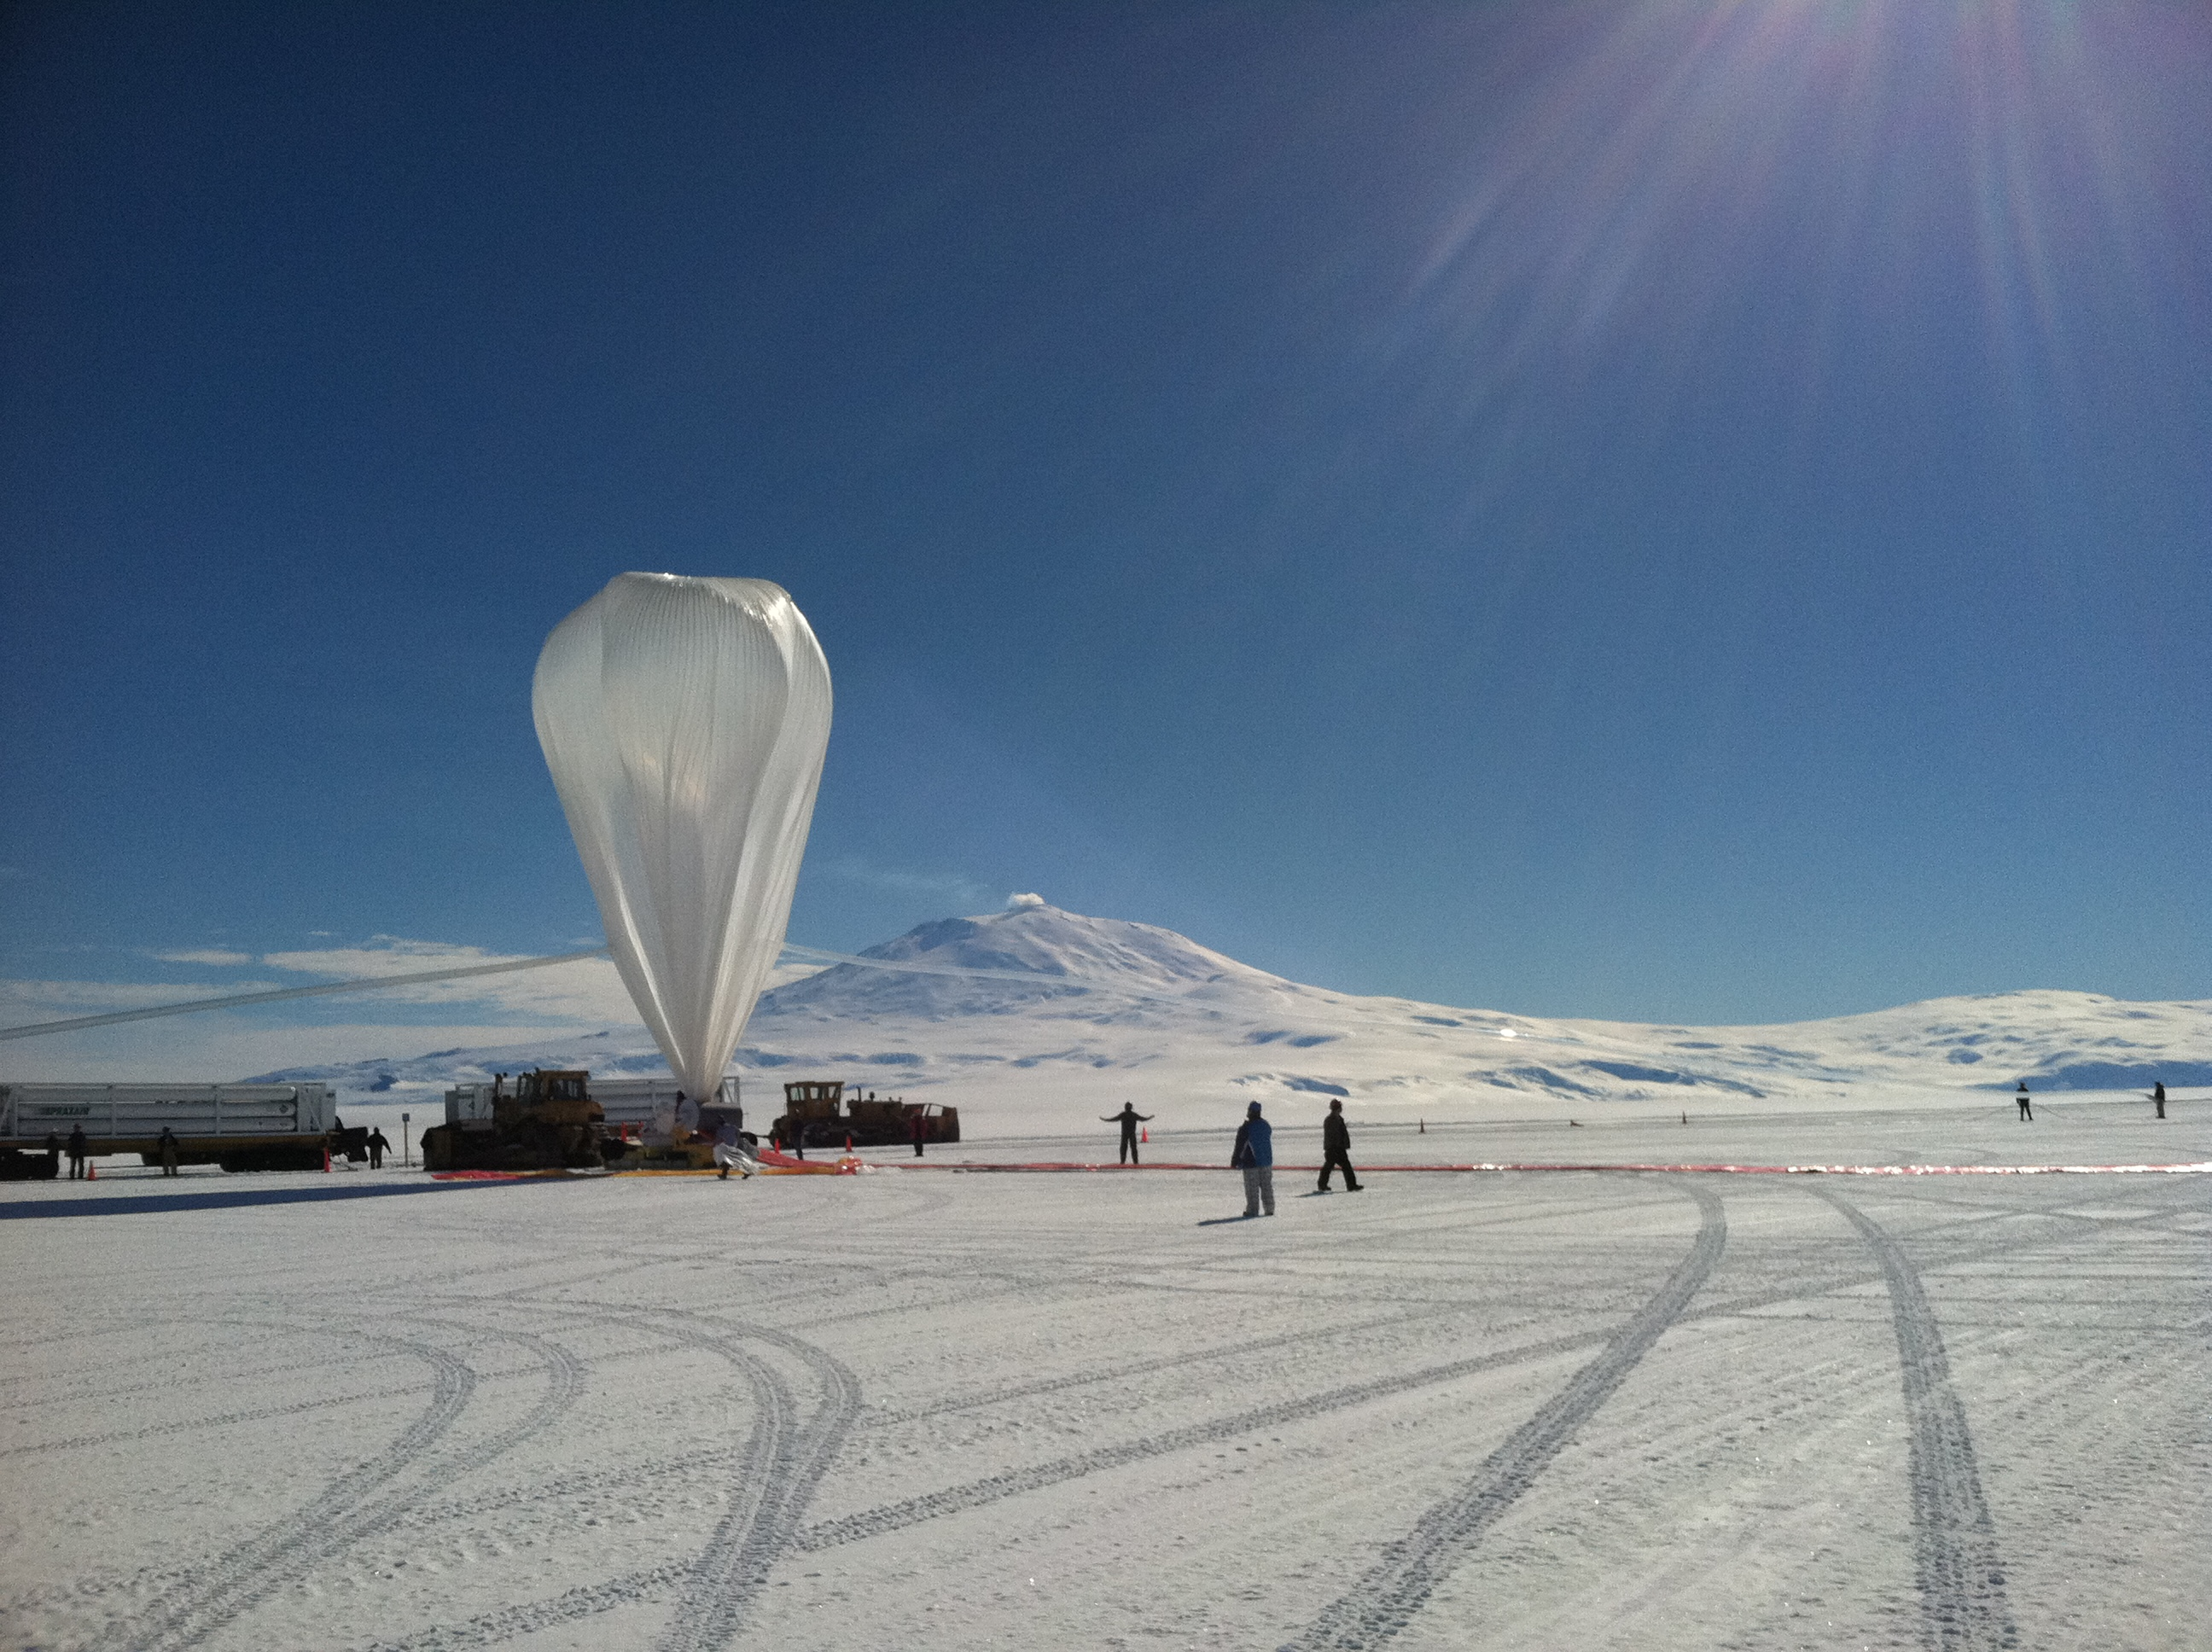 A NASA long duration balloon is prepared for launch in McMurdo Station, Antarctica.